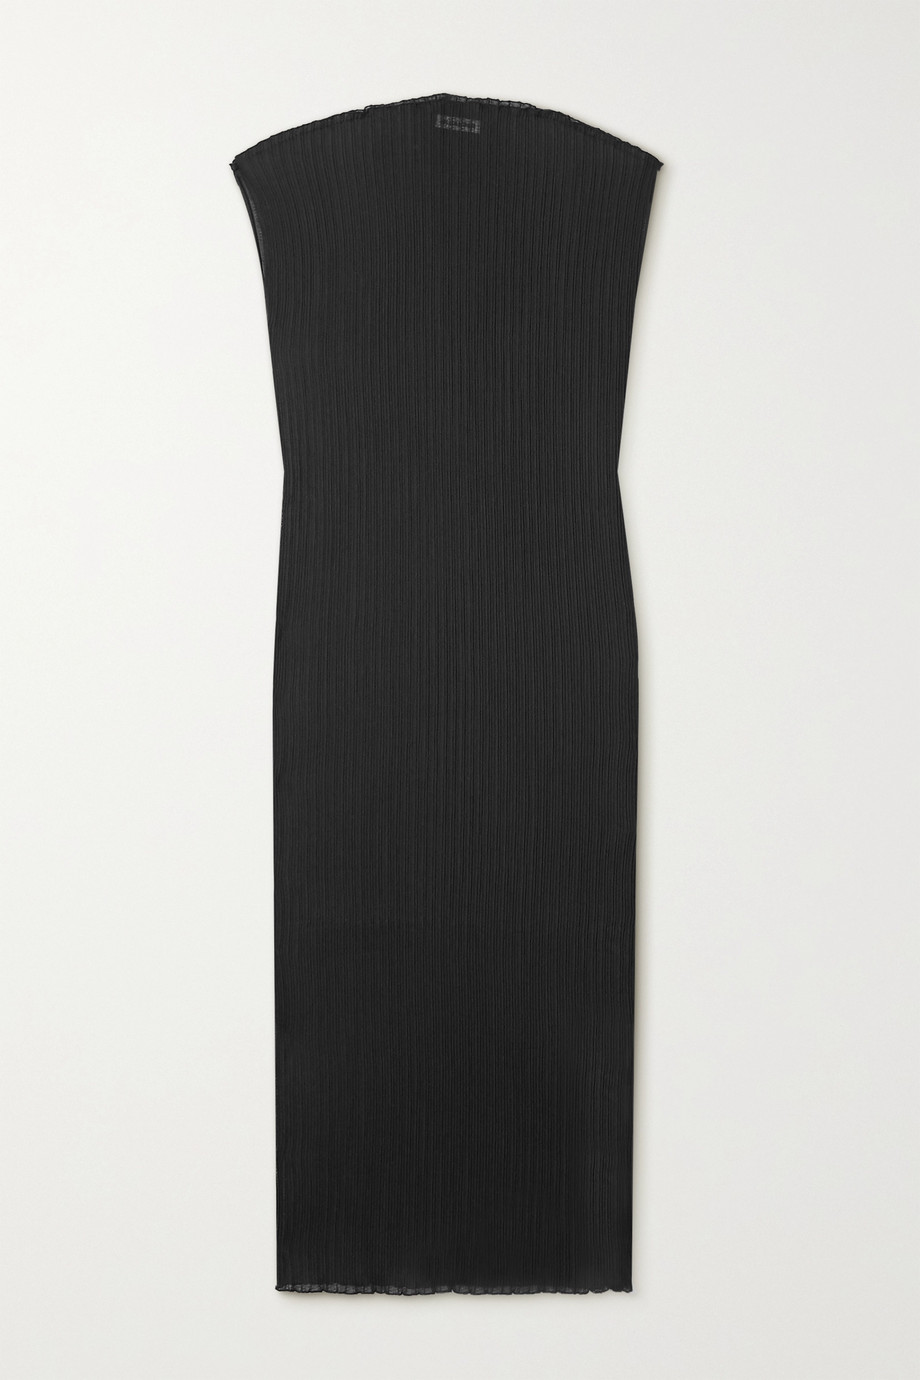 Jil Sander Ribbed stretch-jersey maxi dress